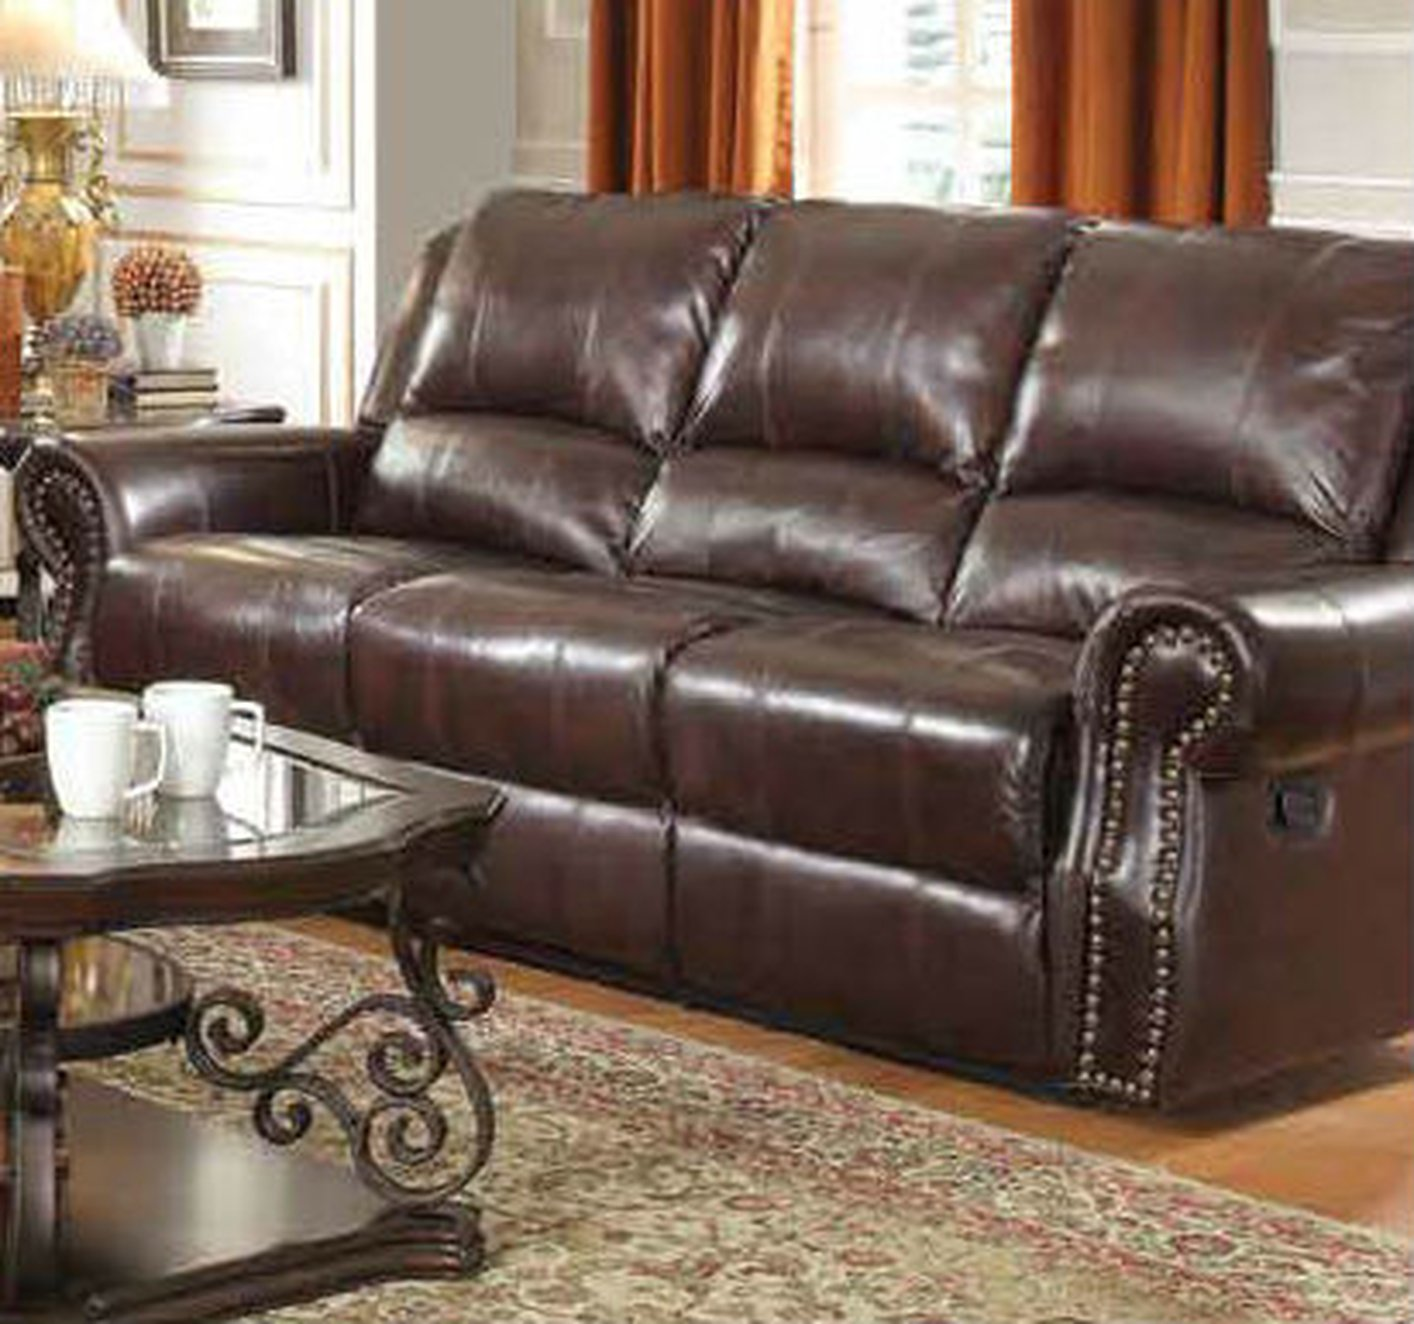 Reclining Sofa Los Angeles Ca Brown Leather Power Reclining Sofa - Steal-a-sofa